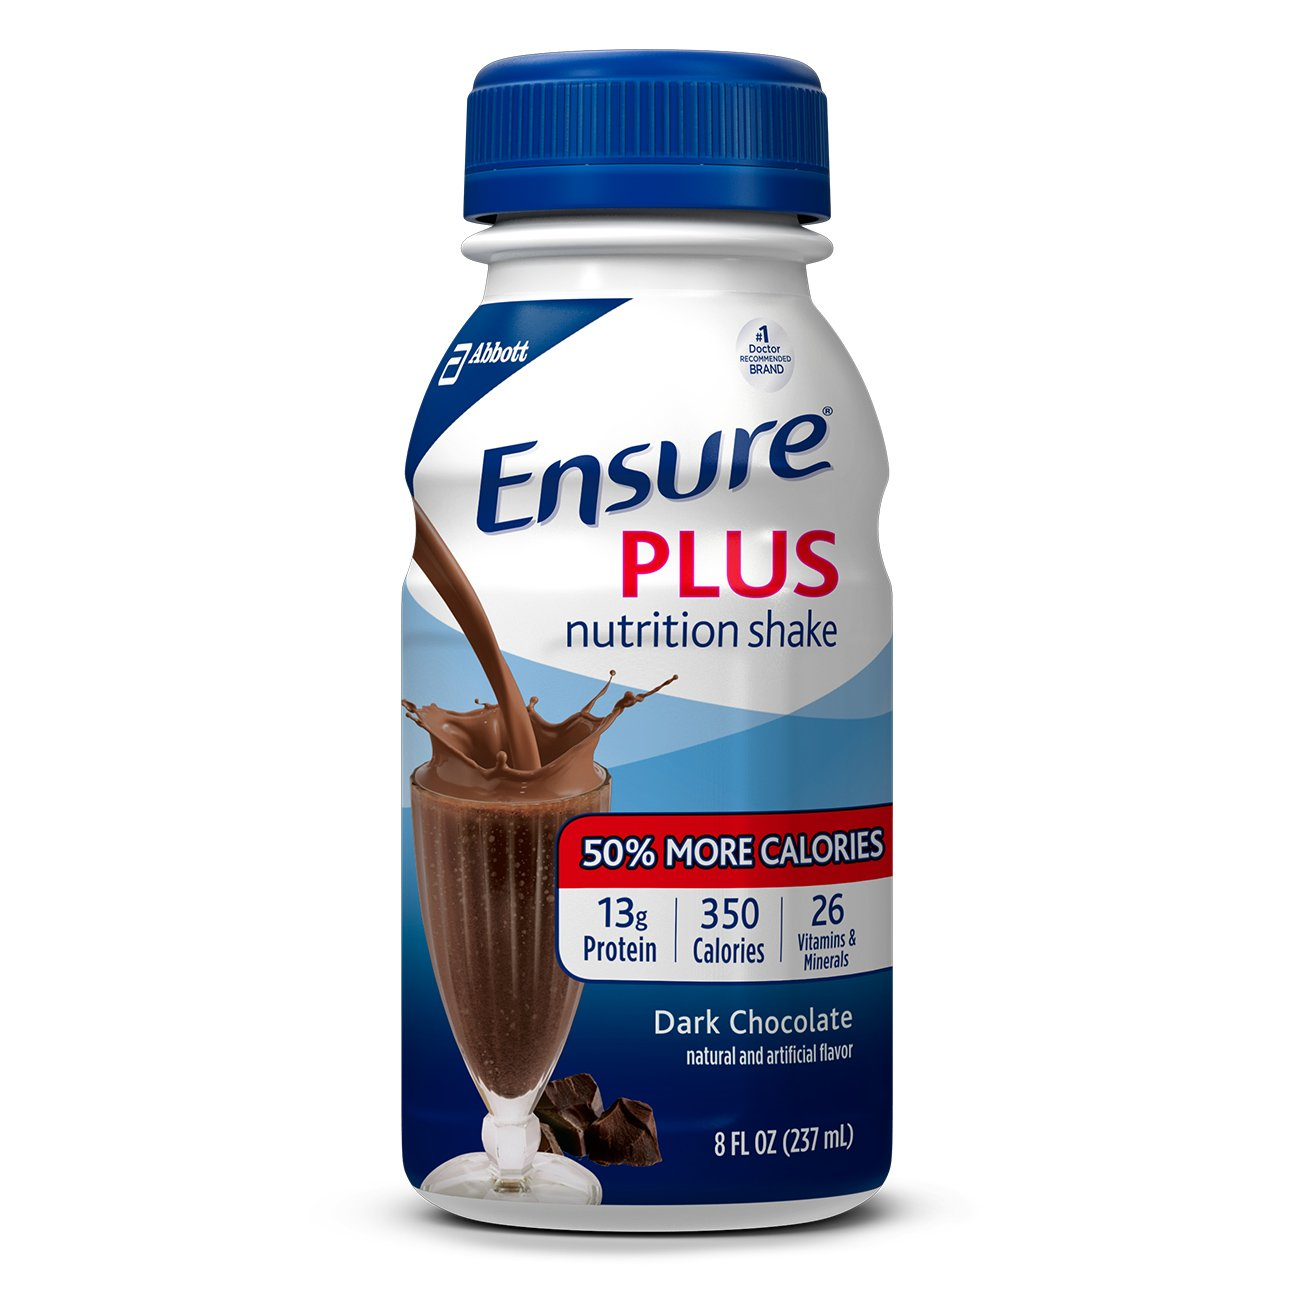 Ensure Plus Nutrition Shake with 13 grams of protein, Meal Replacement Shakes, Dark Chocolate, 8 fl oz (24 Count)